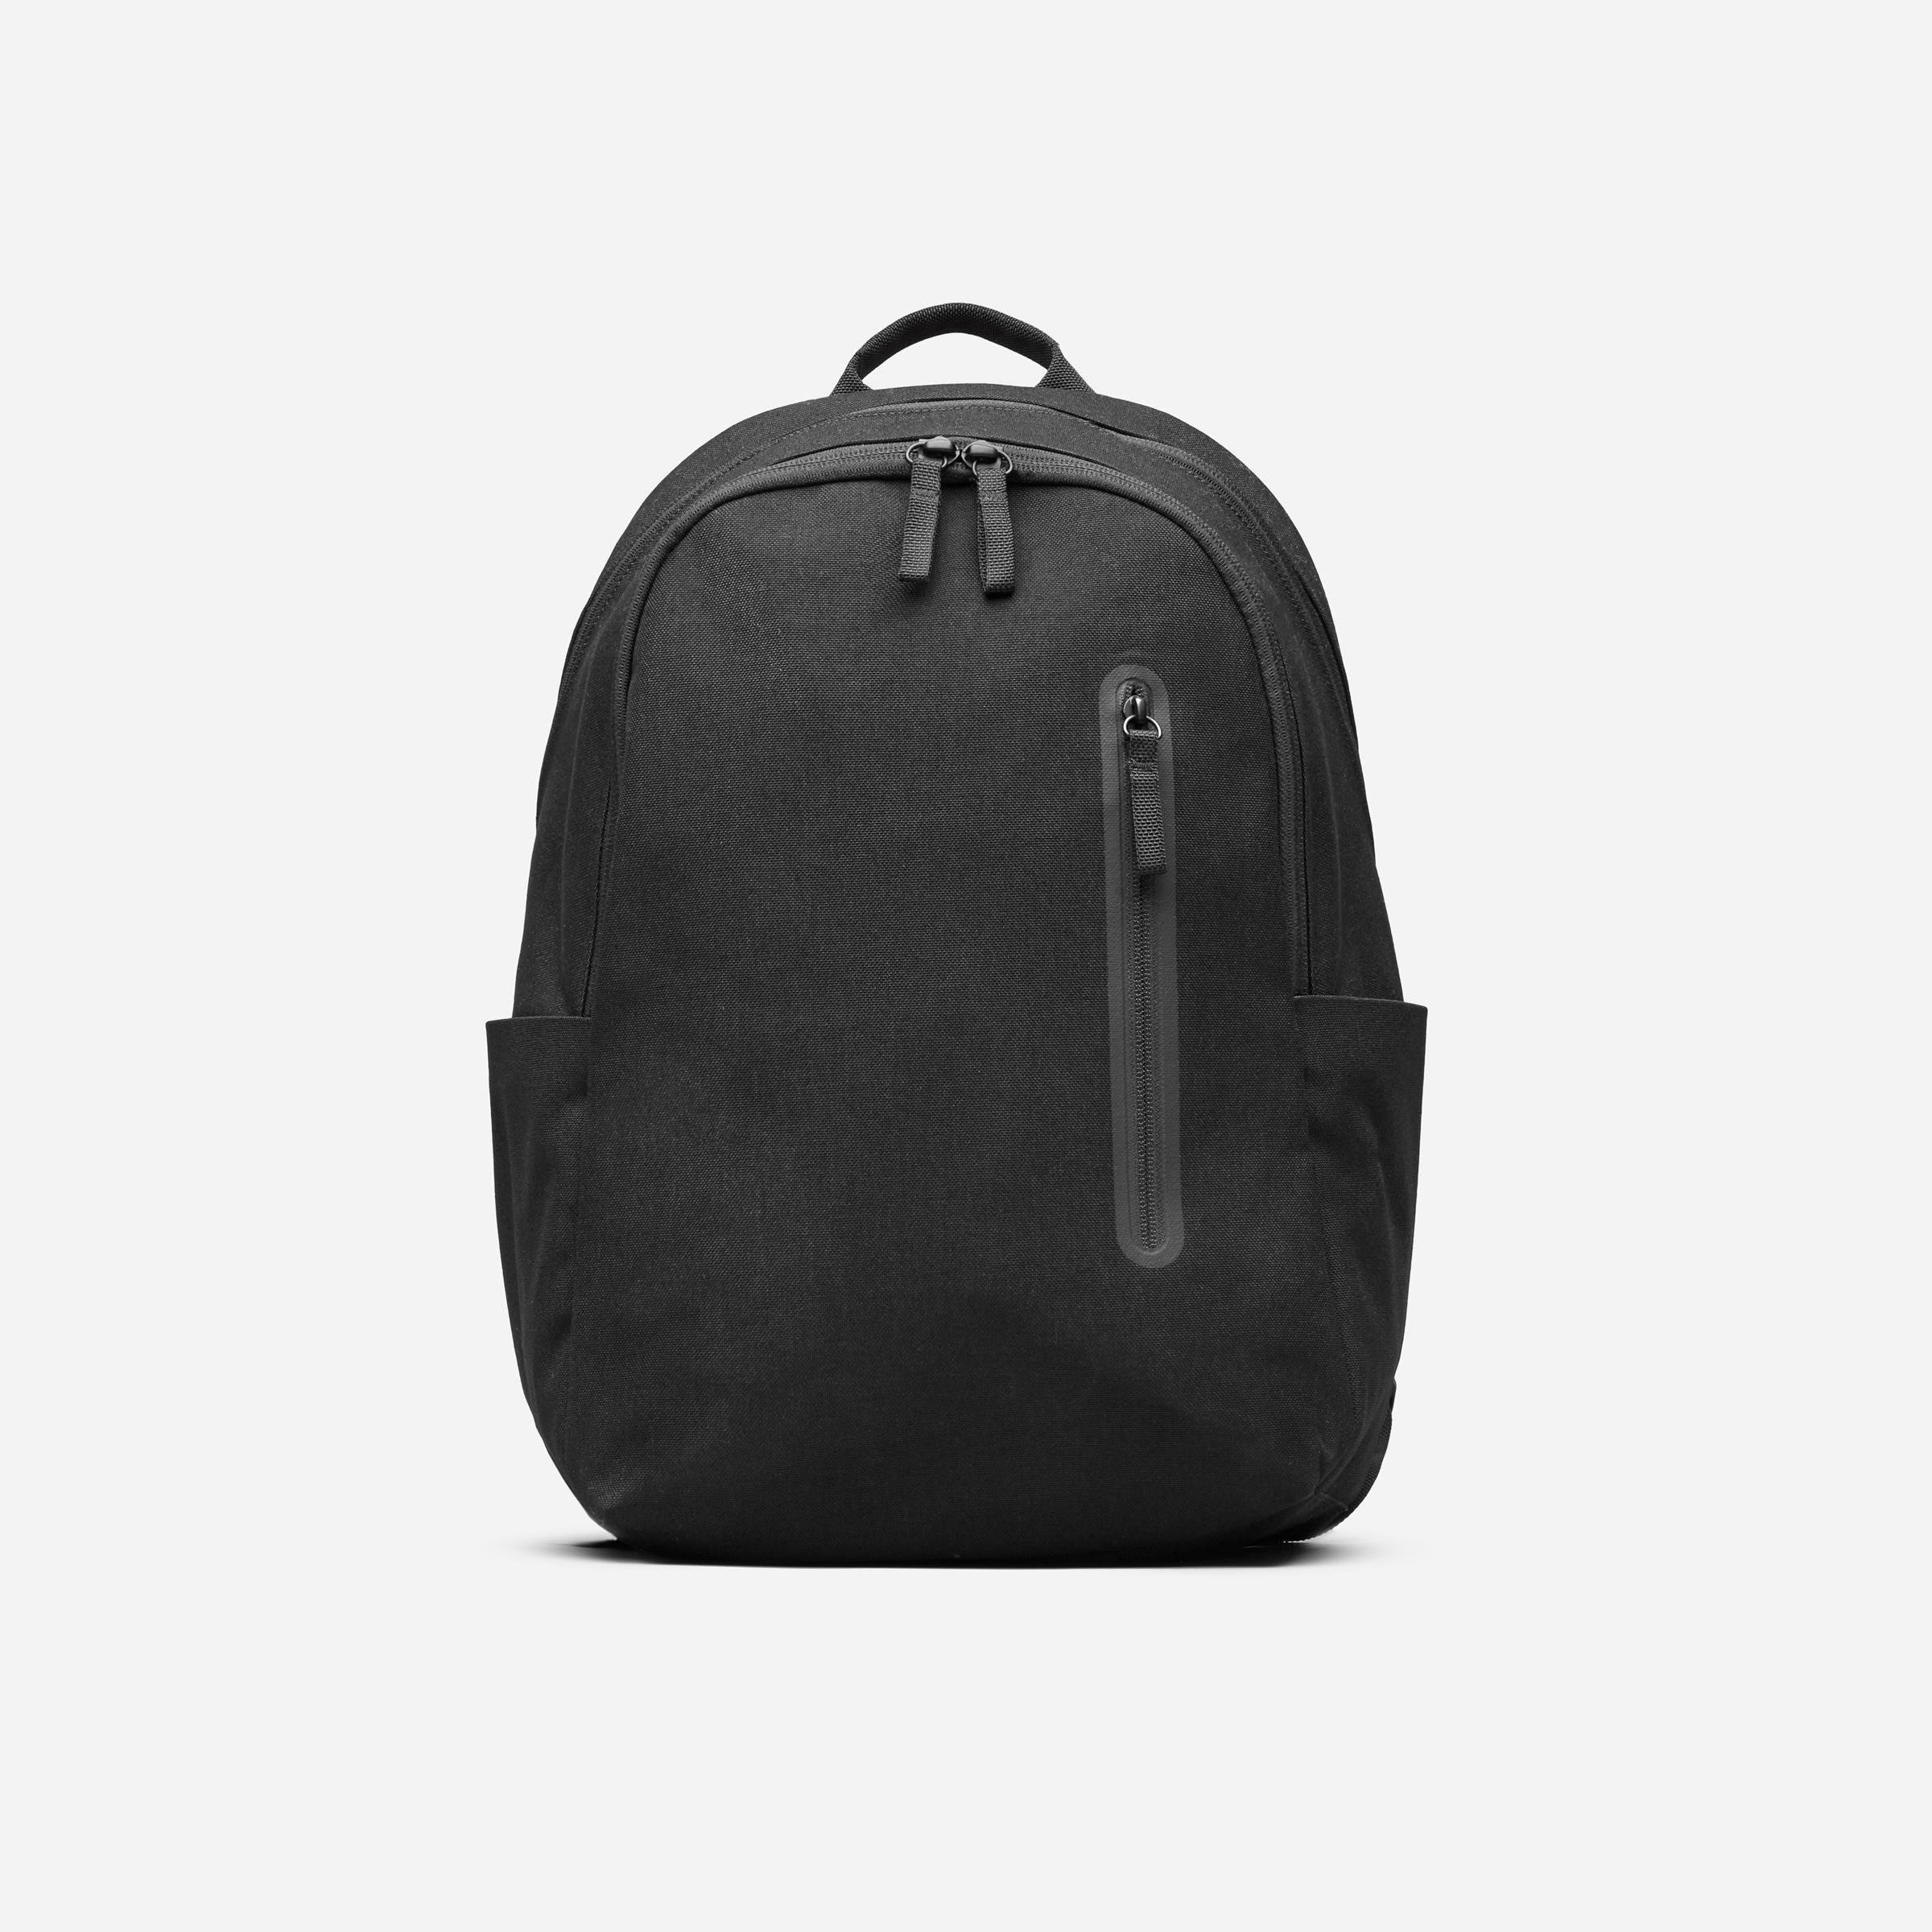 The Nylon Commuter Backpack